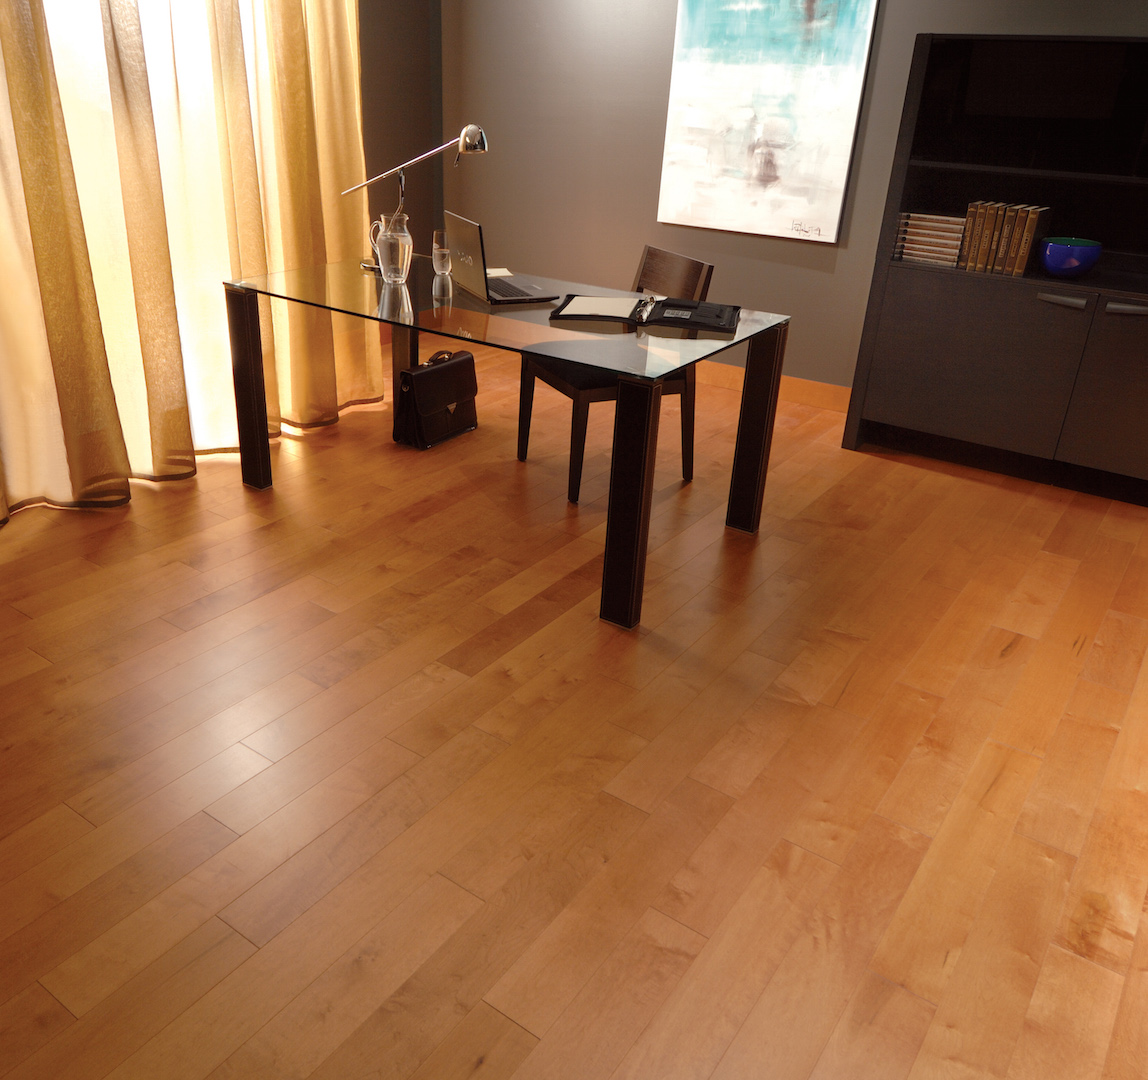 Vinyl flooring or linoleum floors tampa flooring company for Vinyl flooring companies